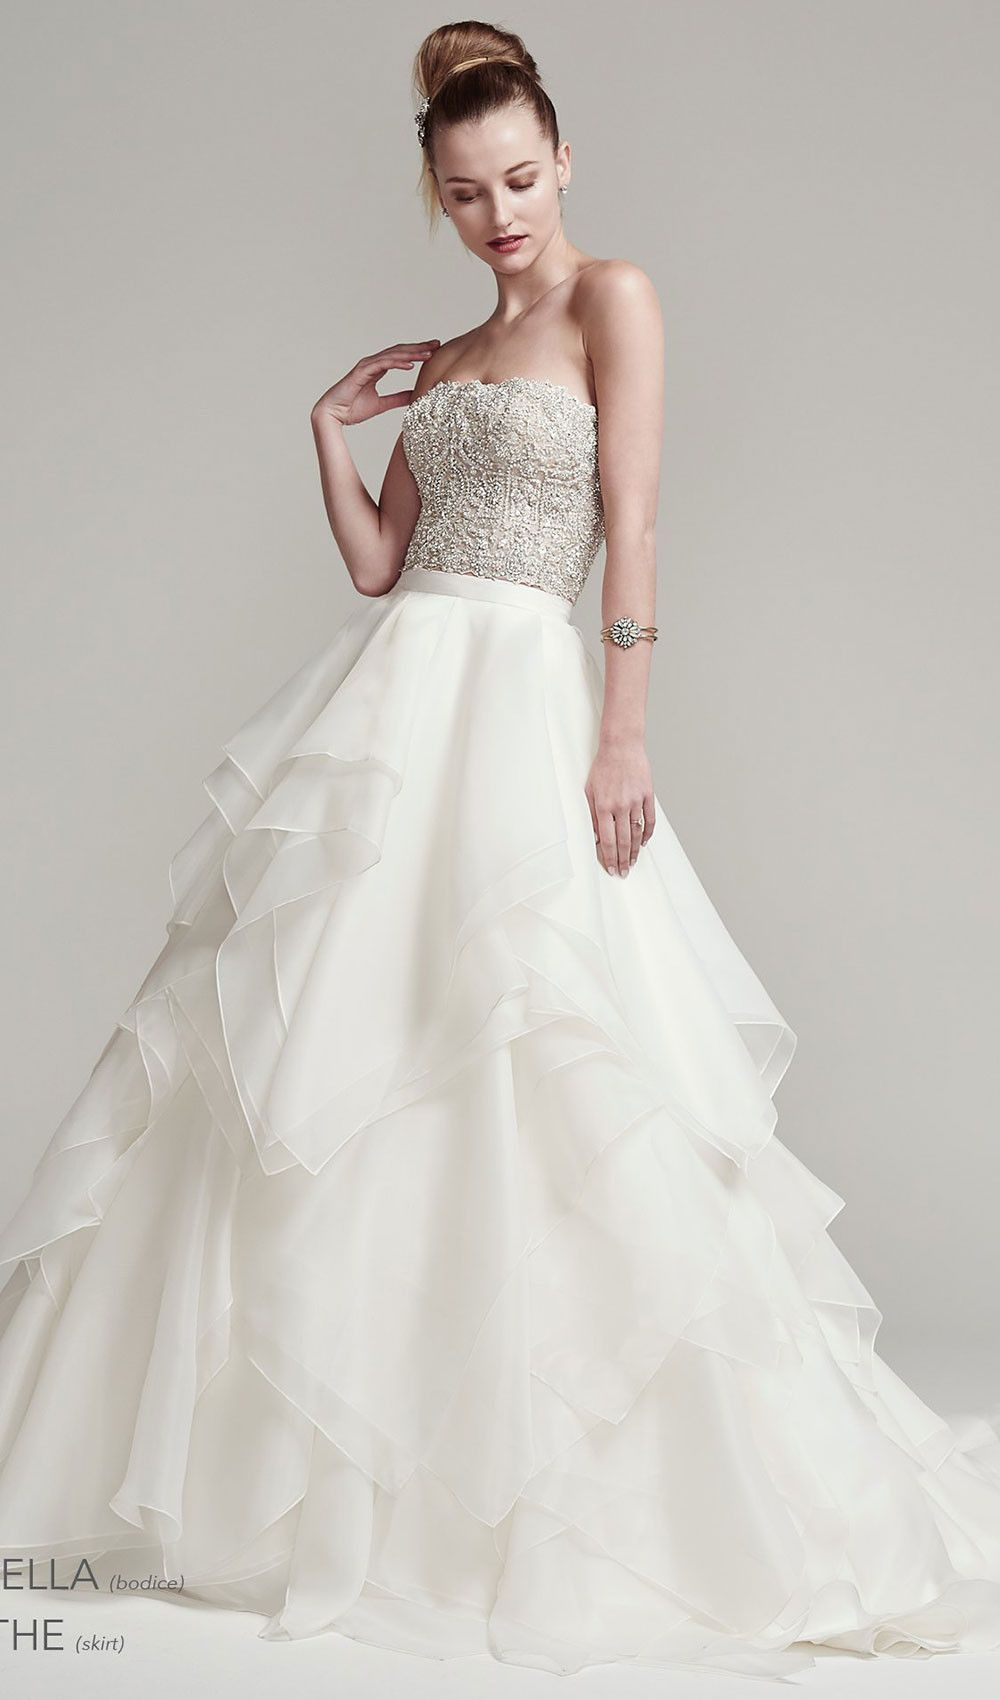 Try This Bead Encrusted Strapless Wedding Dress Bodice Sparkles With Swarovski Crystals Finished